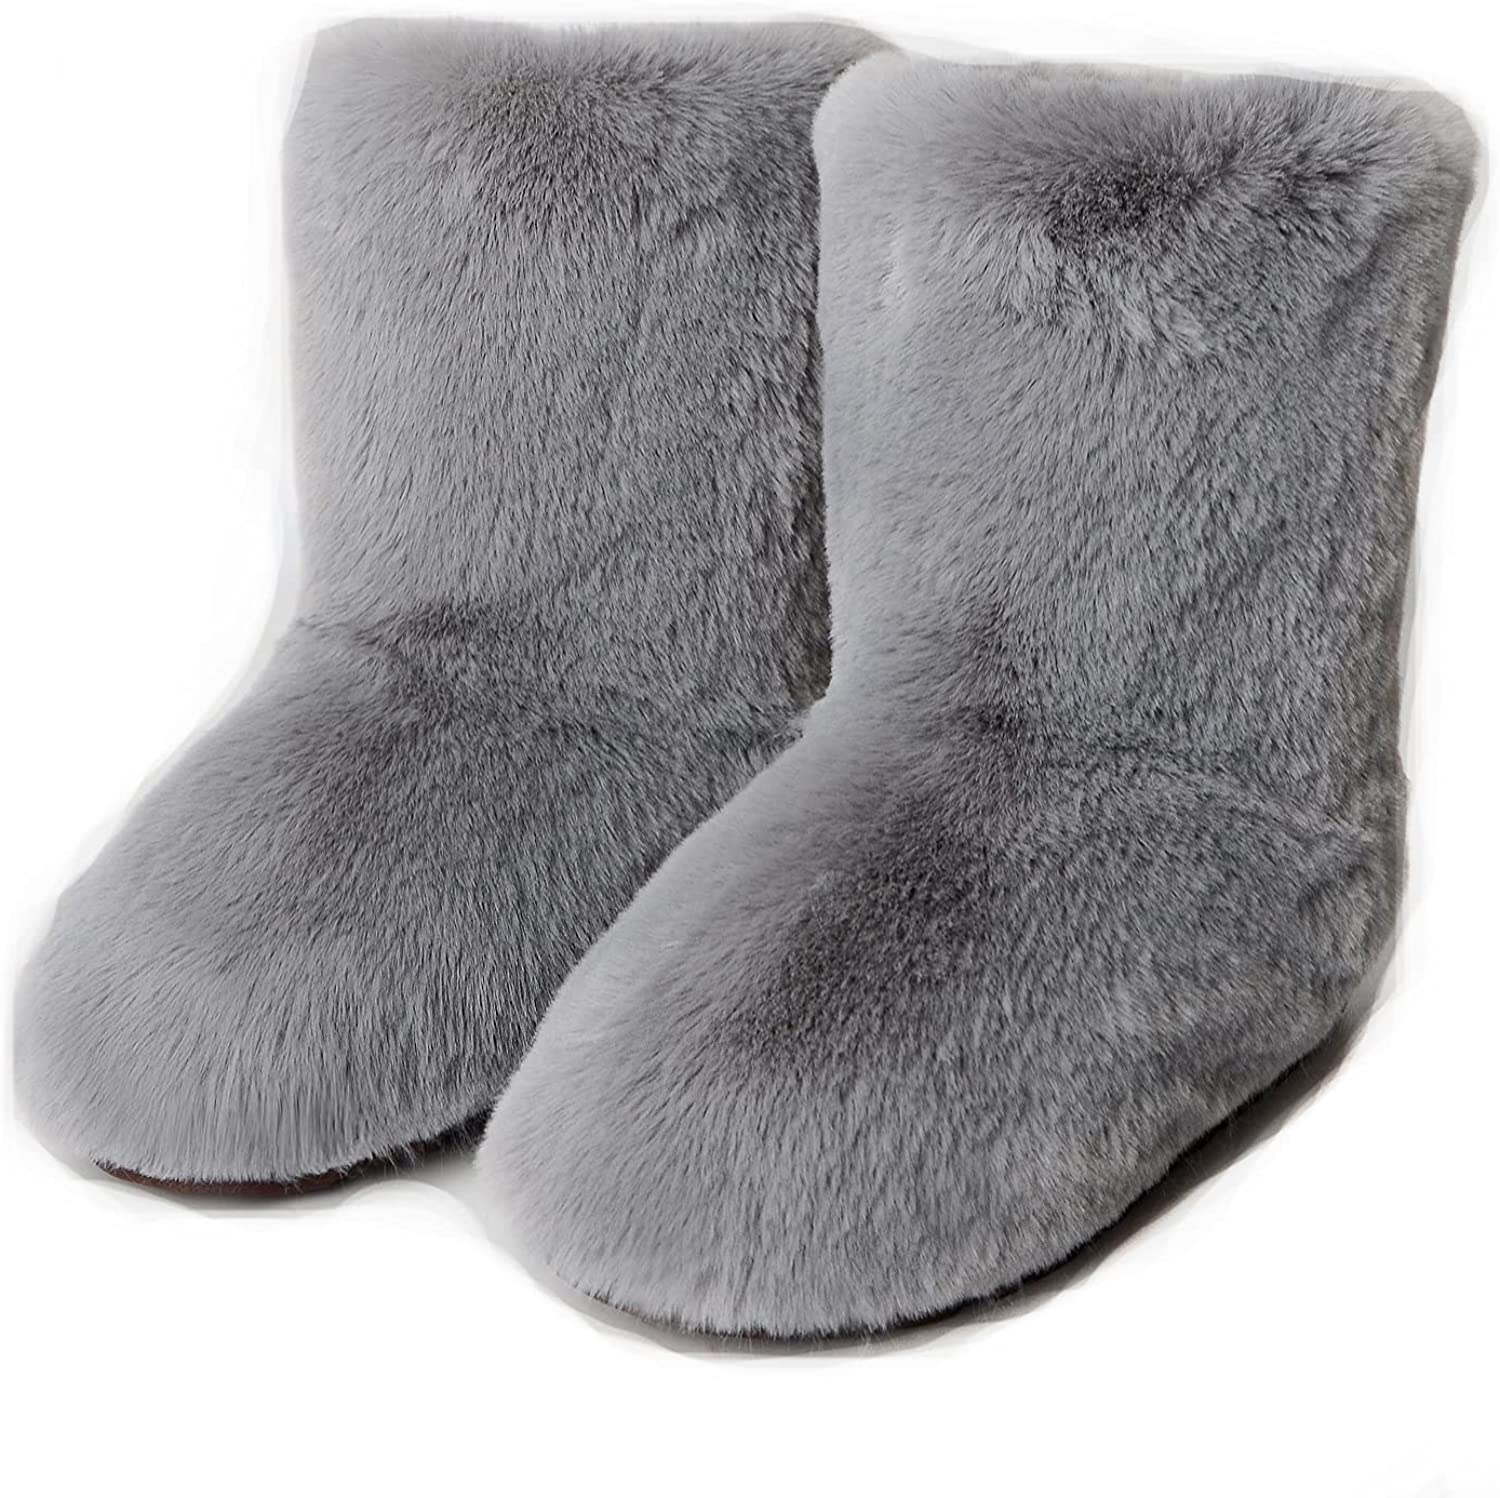 Faux Fur Boot for Women Furry Fluffy Snow Boots Winter Mid-calf Boots Warm Outdoor Flat Shoes